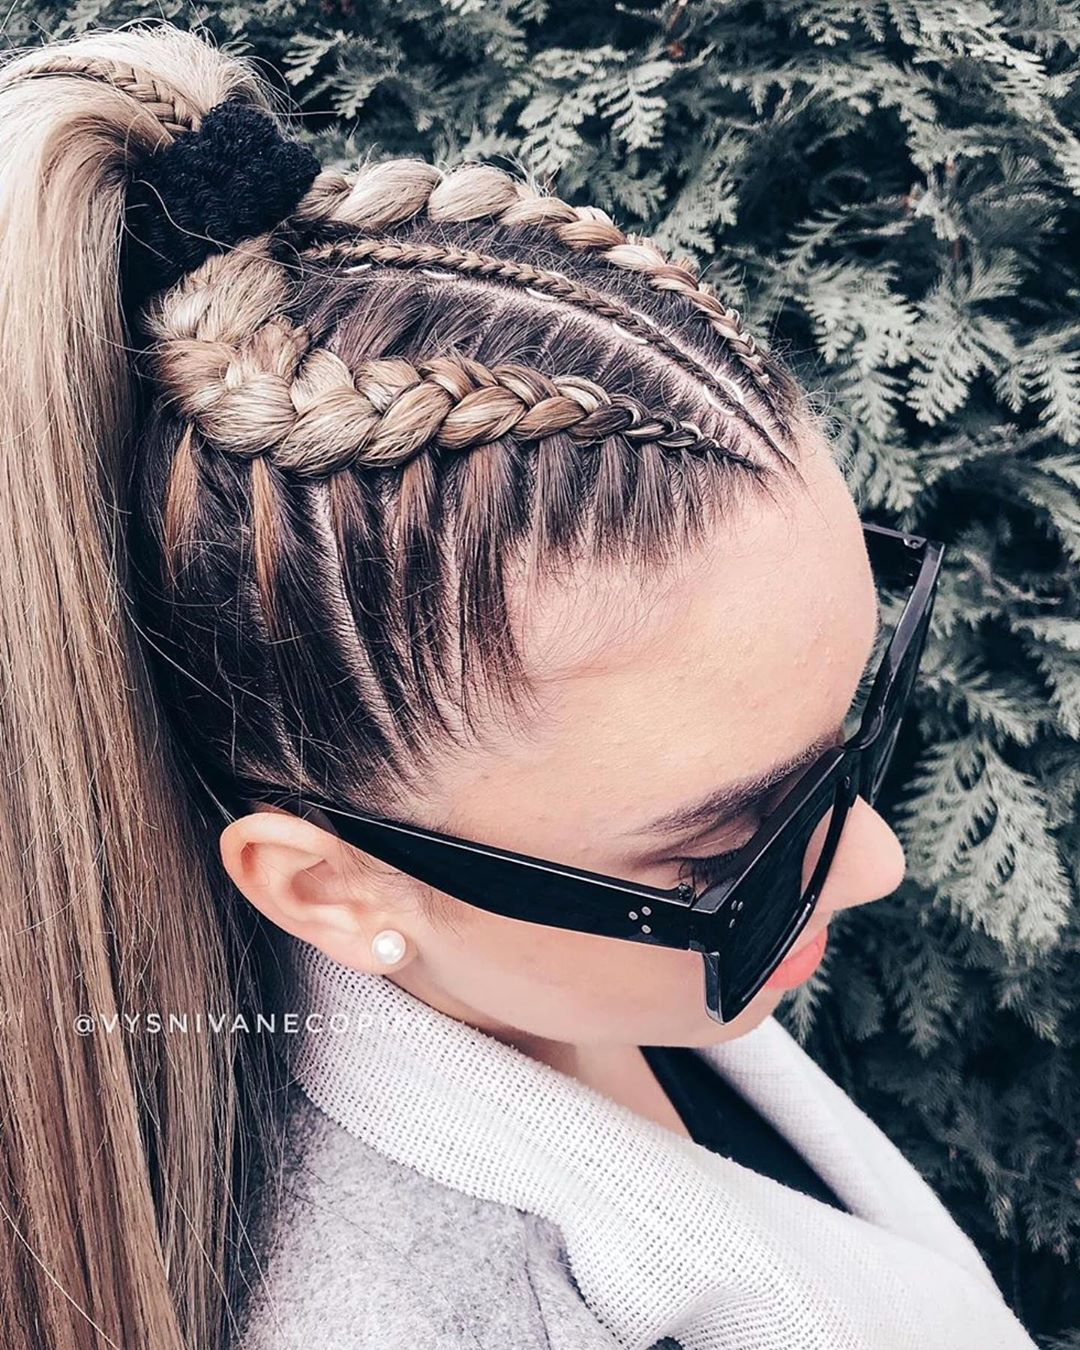 Hairvideo4you On Instagram 1 2 3 4 5 6 7 8 9 Or 10 Follow Us Hairtutorial4you Credit Vysnivanecopik Hair Styles Braided Hairstyles Long Hair Styles